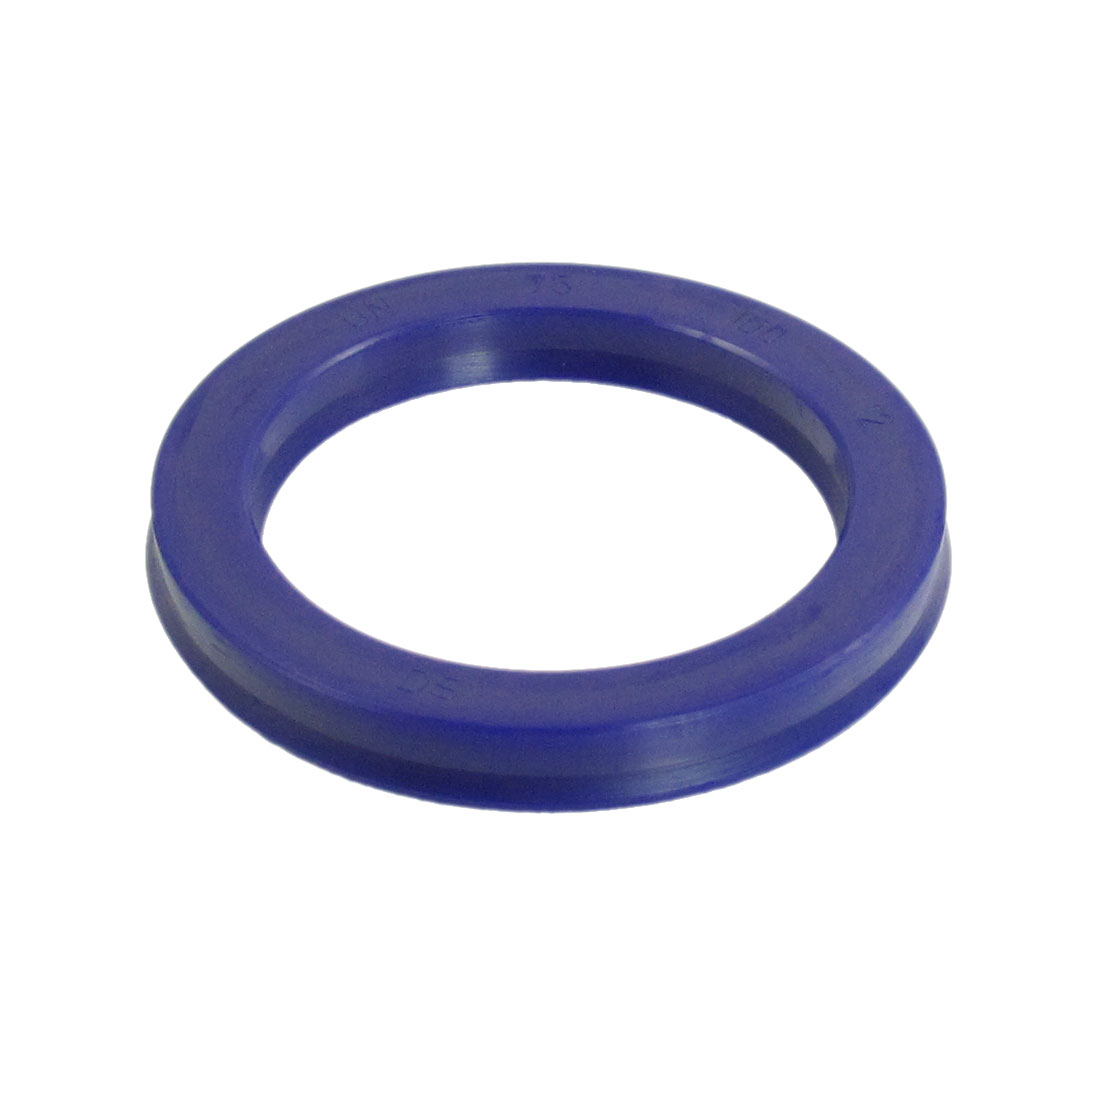 Blue PU 75mm x 100mm x 12mm Double Lip Sealing Cushion Dust Seal Ring